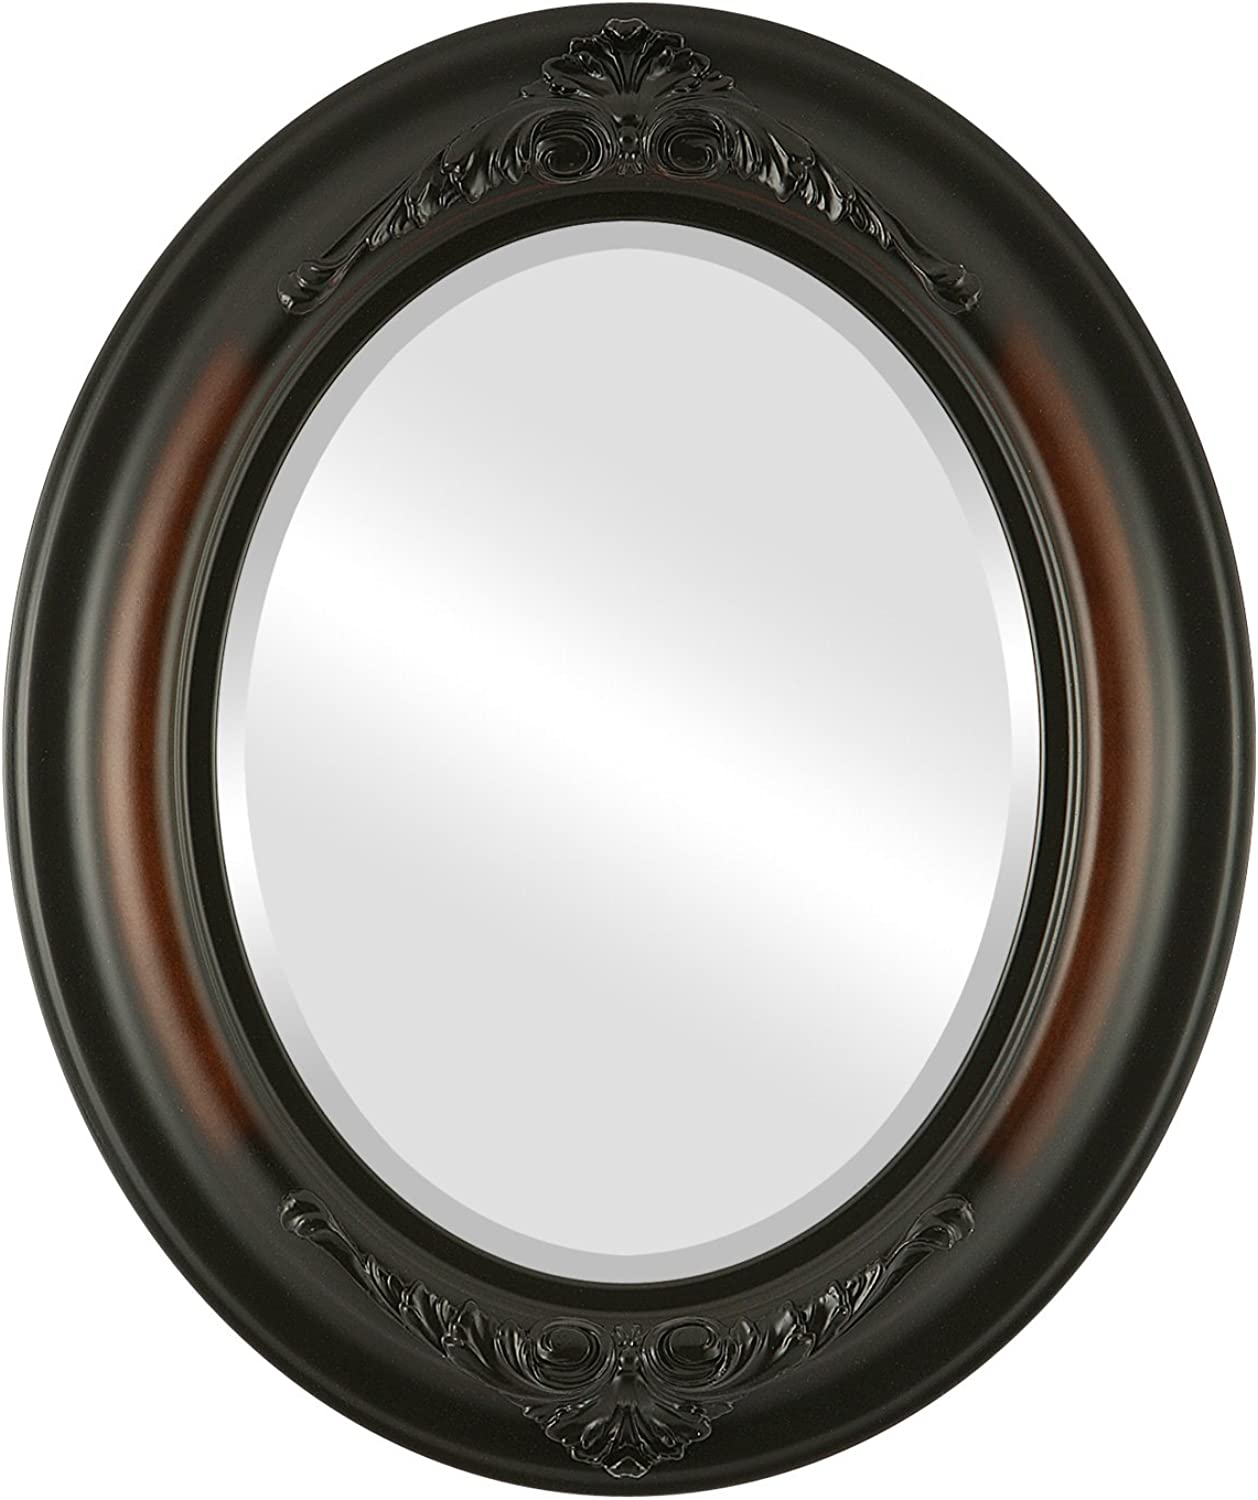 OvalAndRoundMirrors  Oval Beveled Mirror in a Winchester style Walnut frame with 17x21 outside dimensions